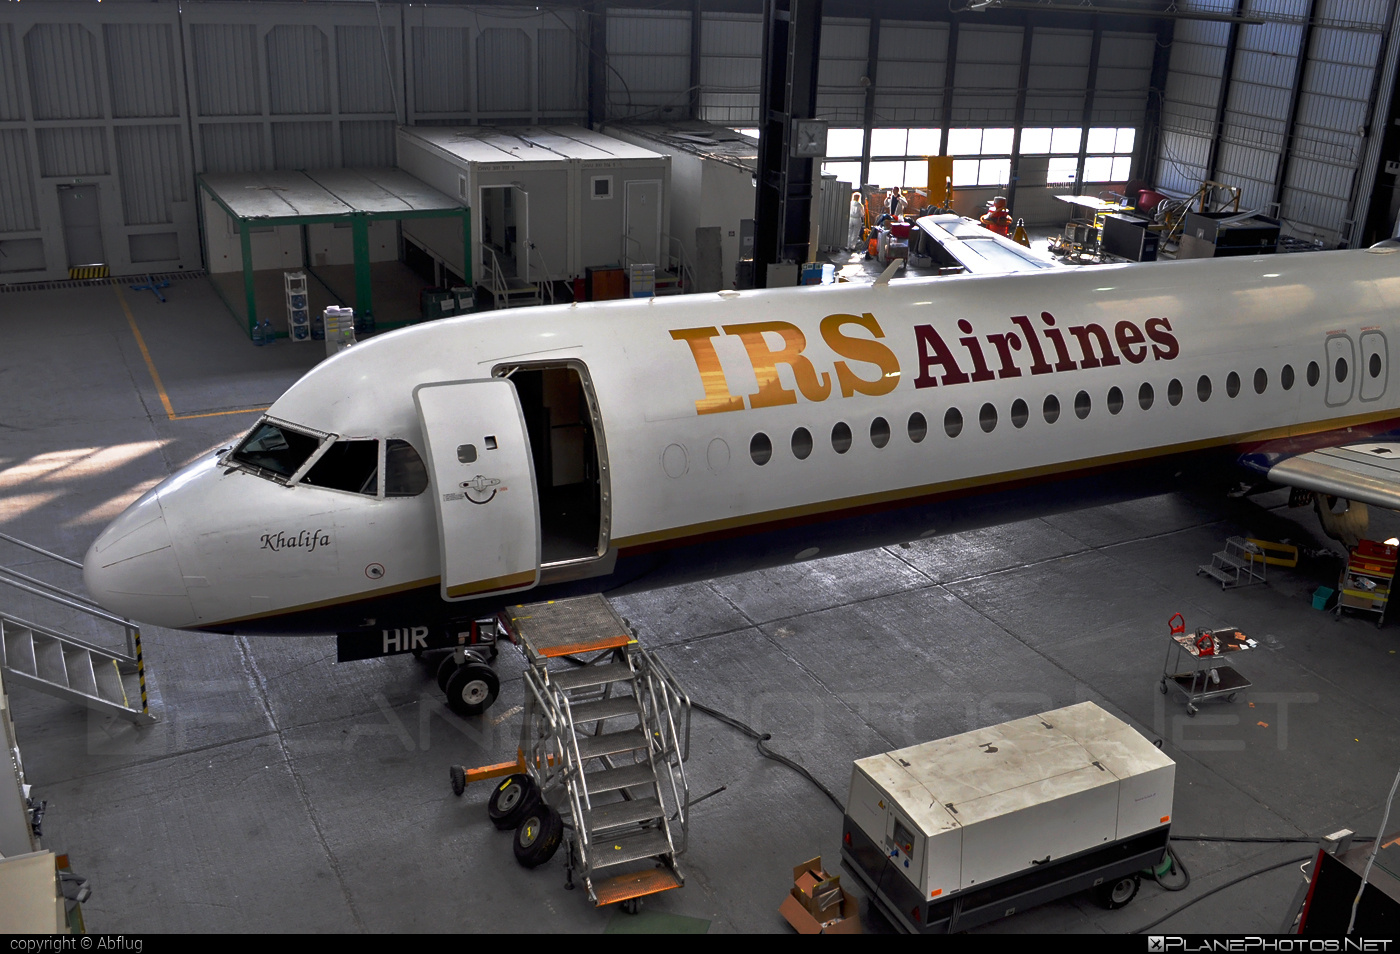 Fokker 100 - 5N-HIR operated by IRS Airlines #fokker